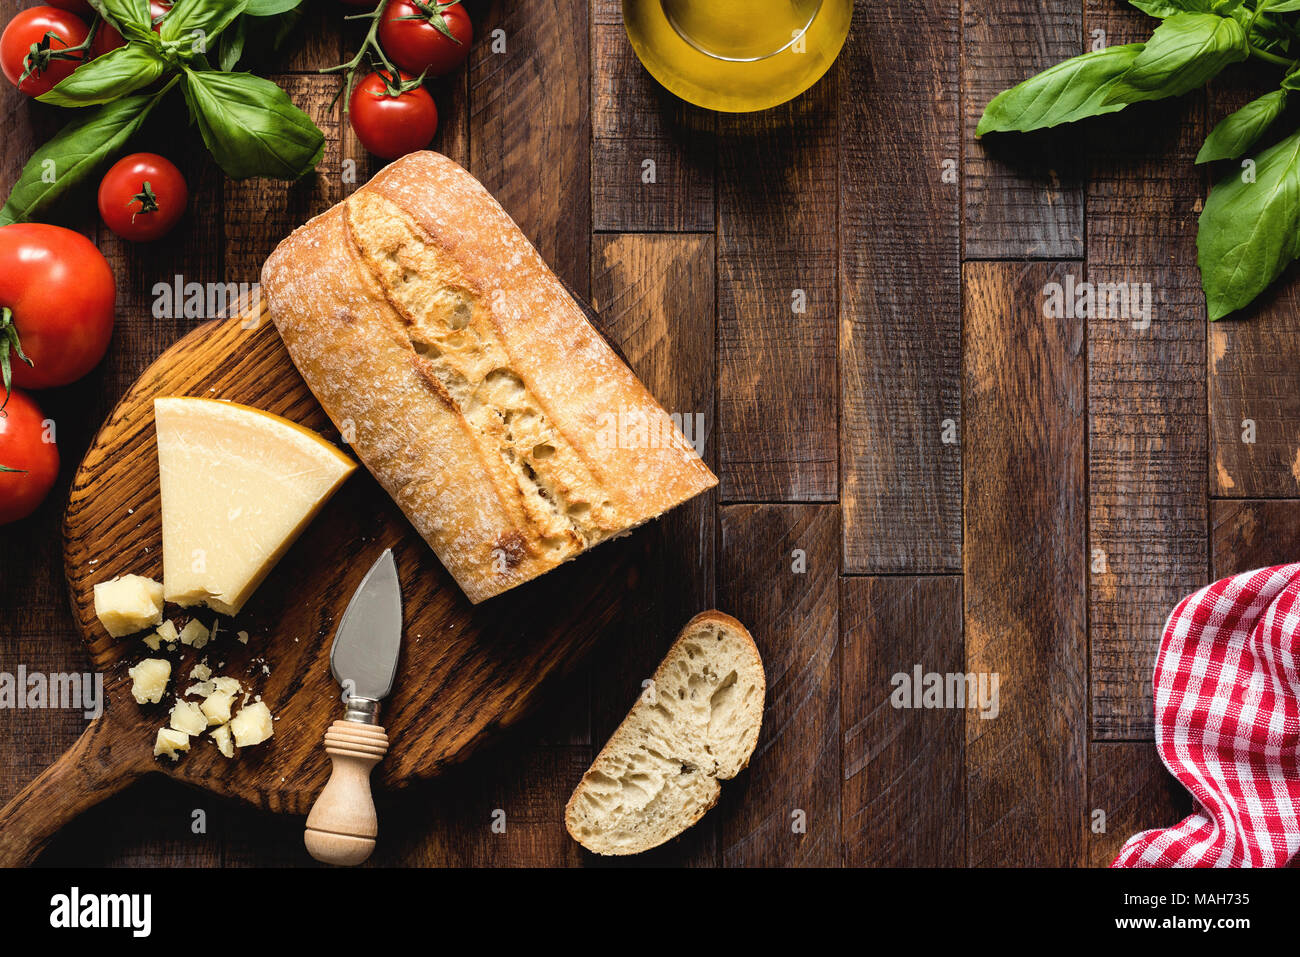 Italian food on rustic wood background, top view. Parmesan cheese, ciabatta, bruschetta, basil, olive oil and tomatoes. Italian cuisine - Stock Image